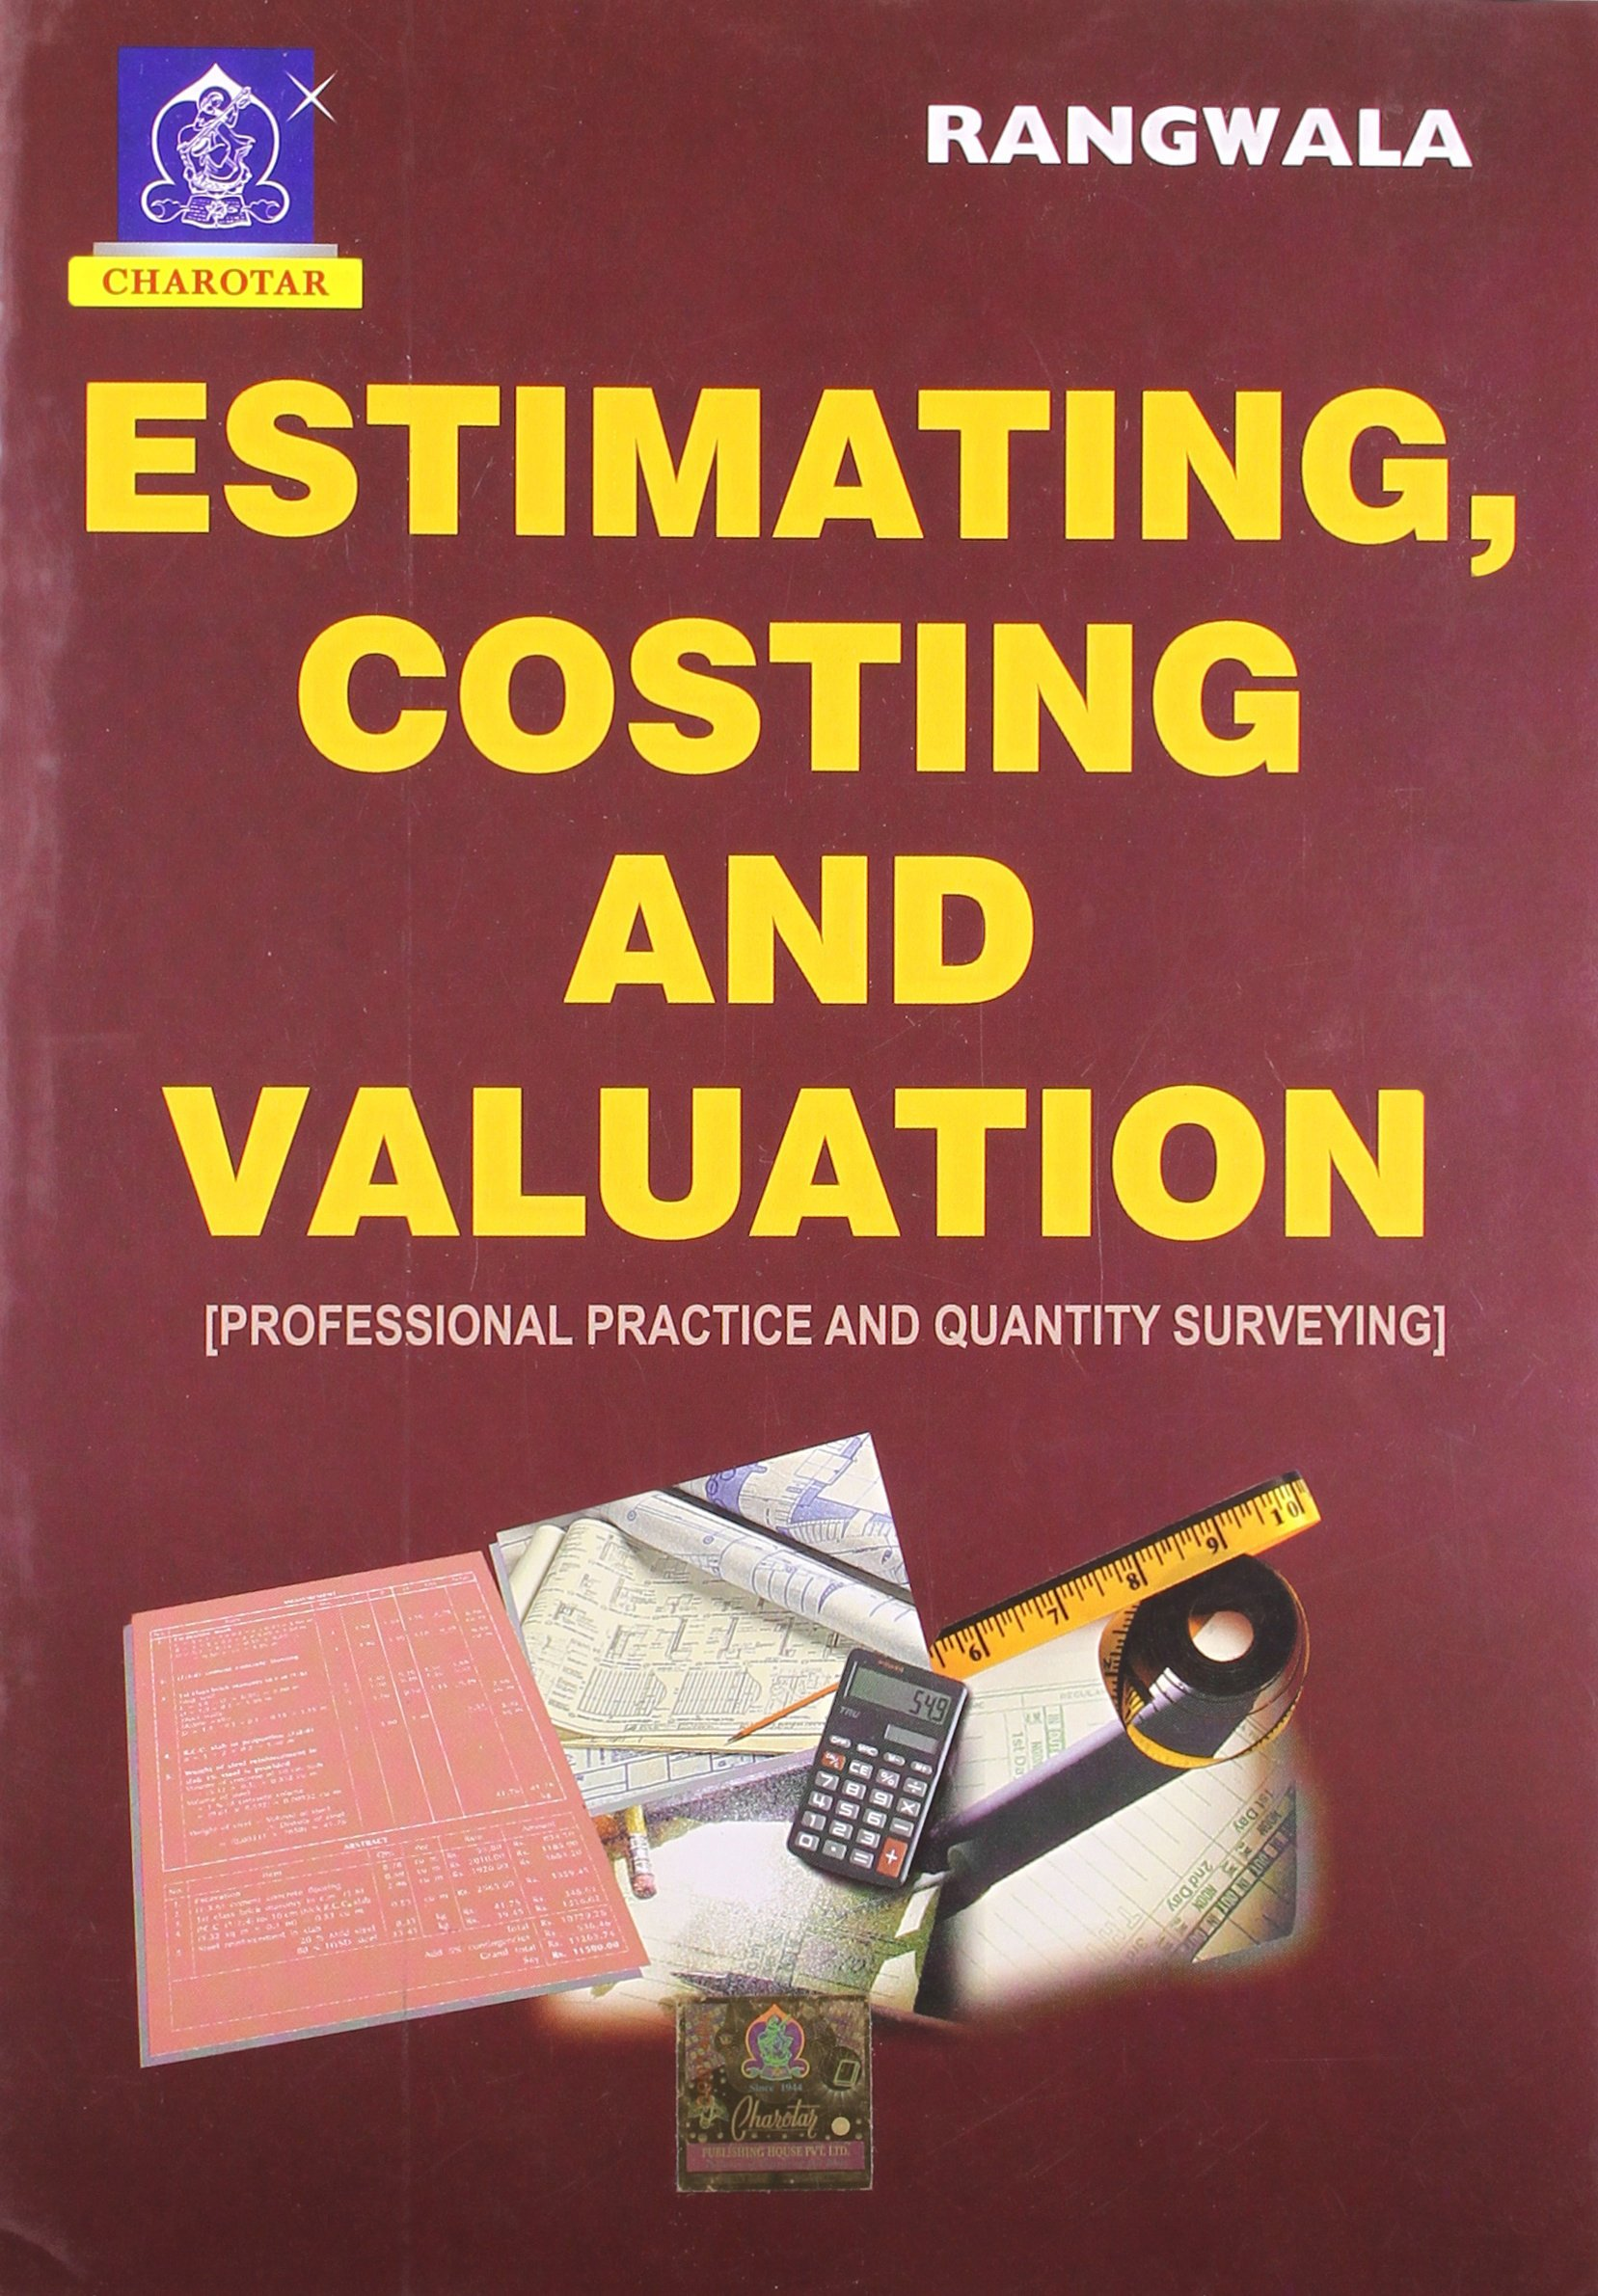 Amazon buy estimating costing and valuation book online at low amazon buy estimating costing and valuation book online at low prices in india estimating costing and valuation reviews ratings fandeluxe Images